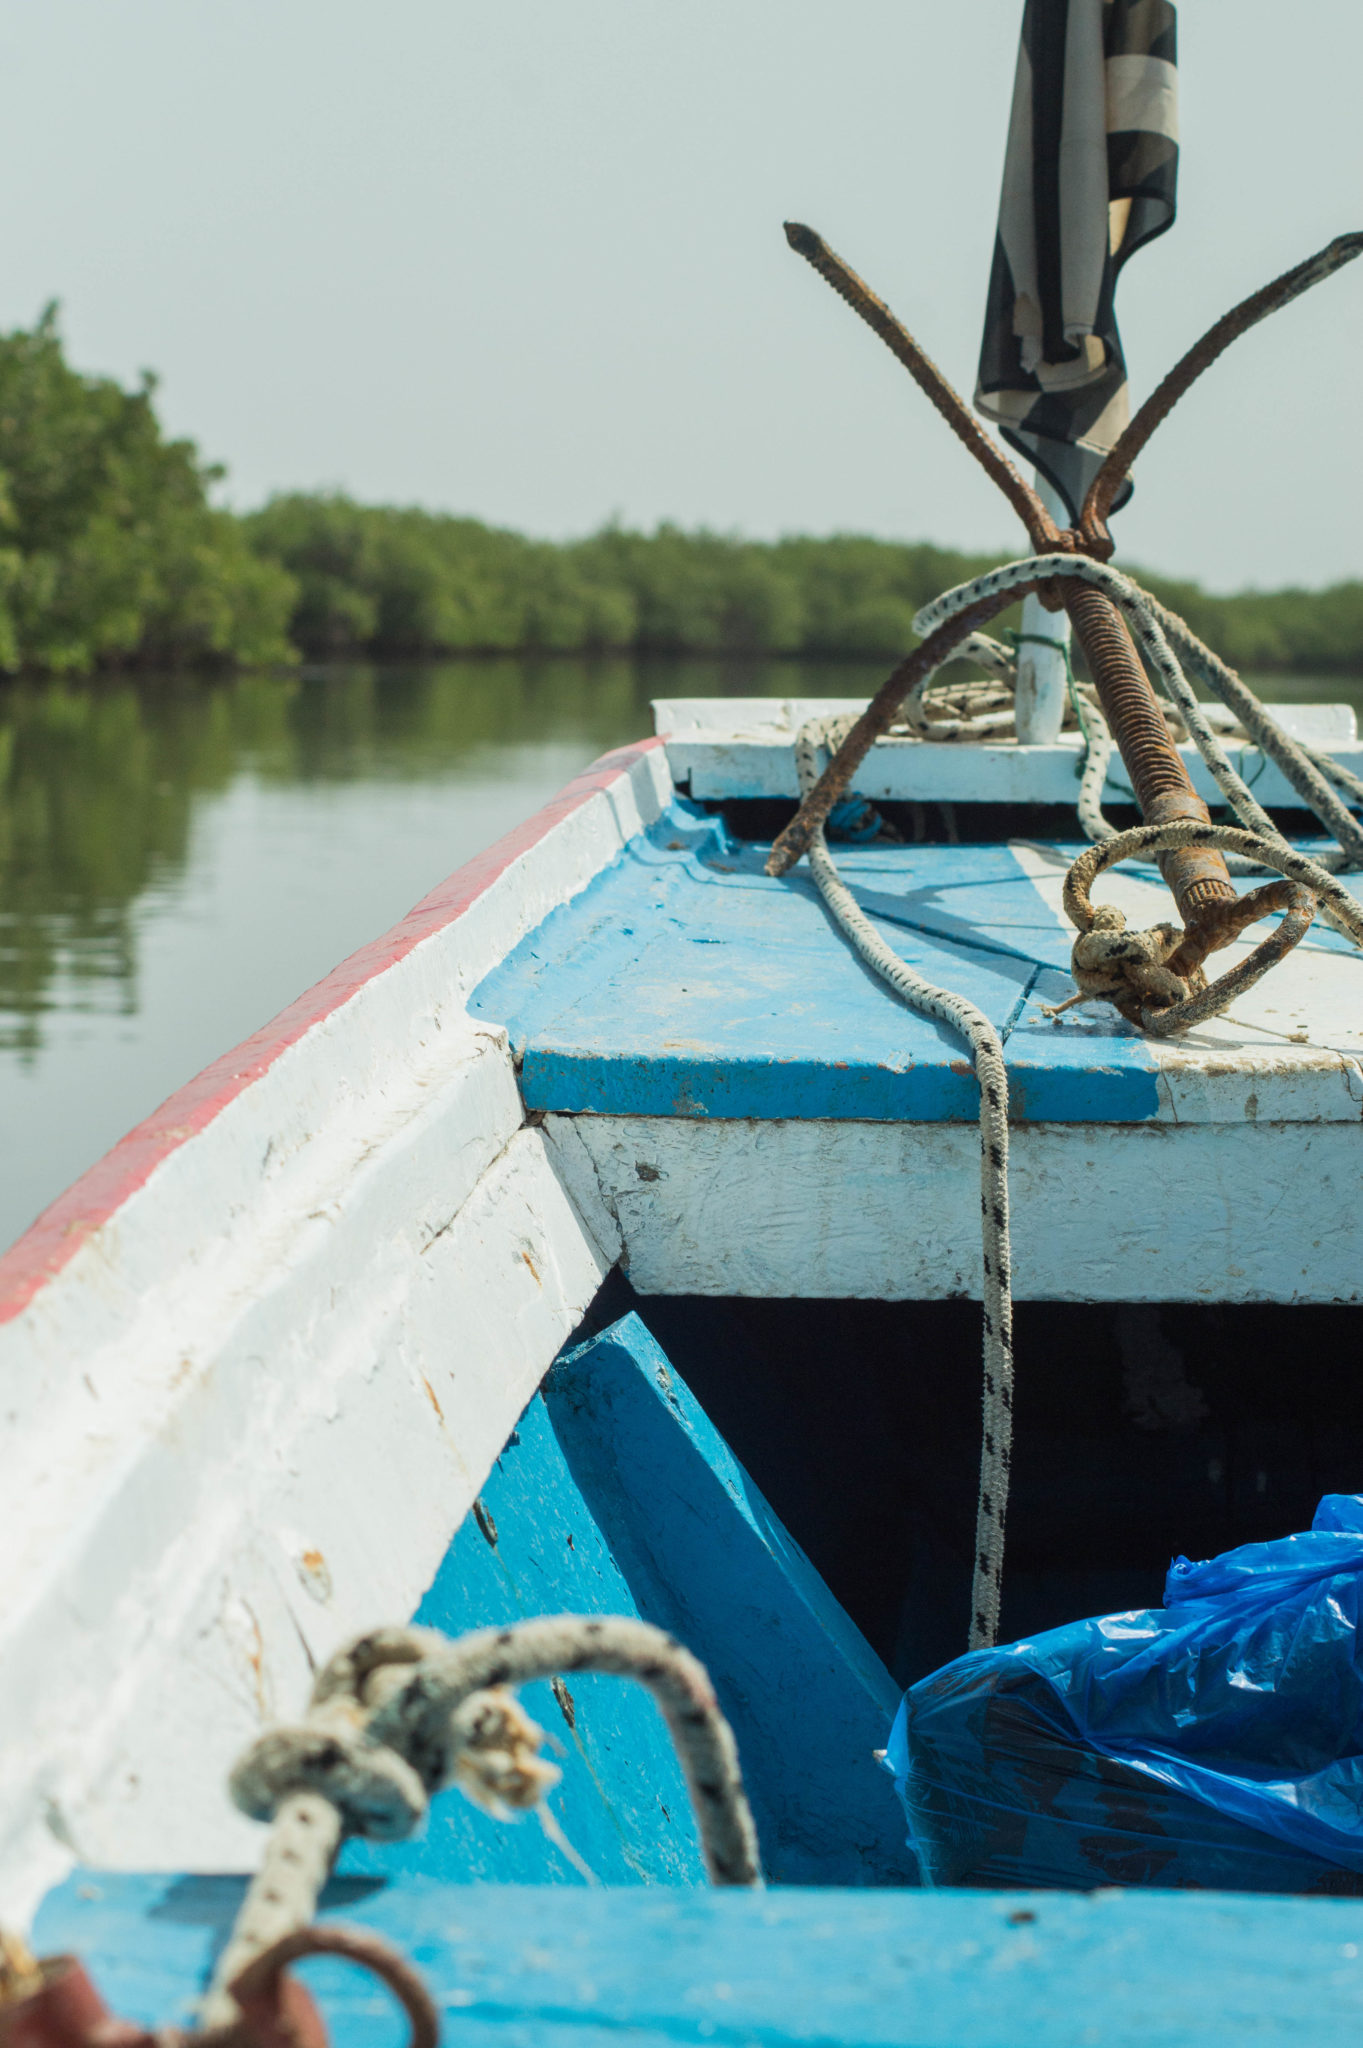 Taking the pirogue to the hotel is typical for a trip to the Sine Saloum Delta in Senegal